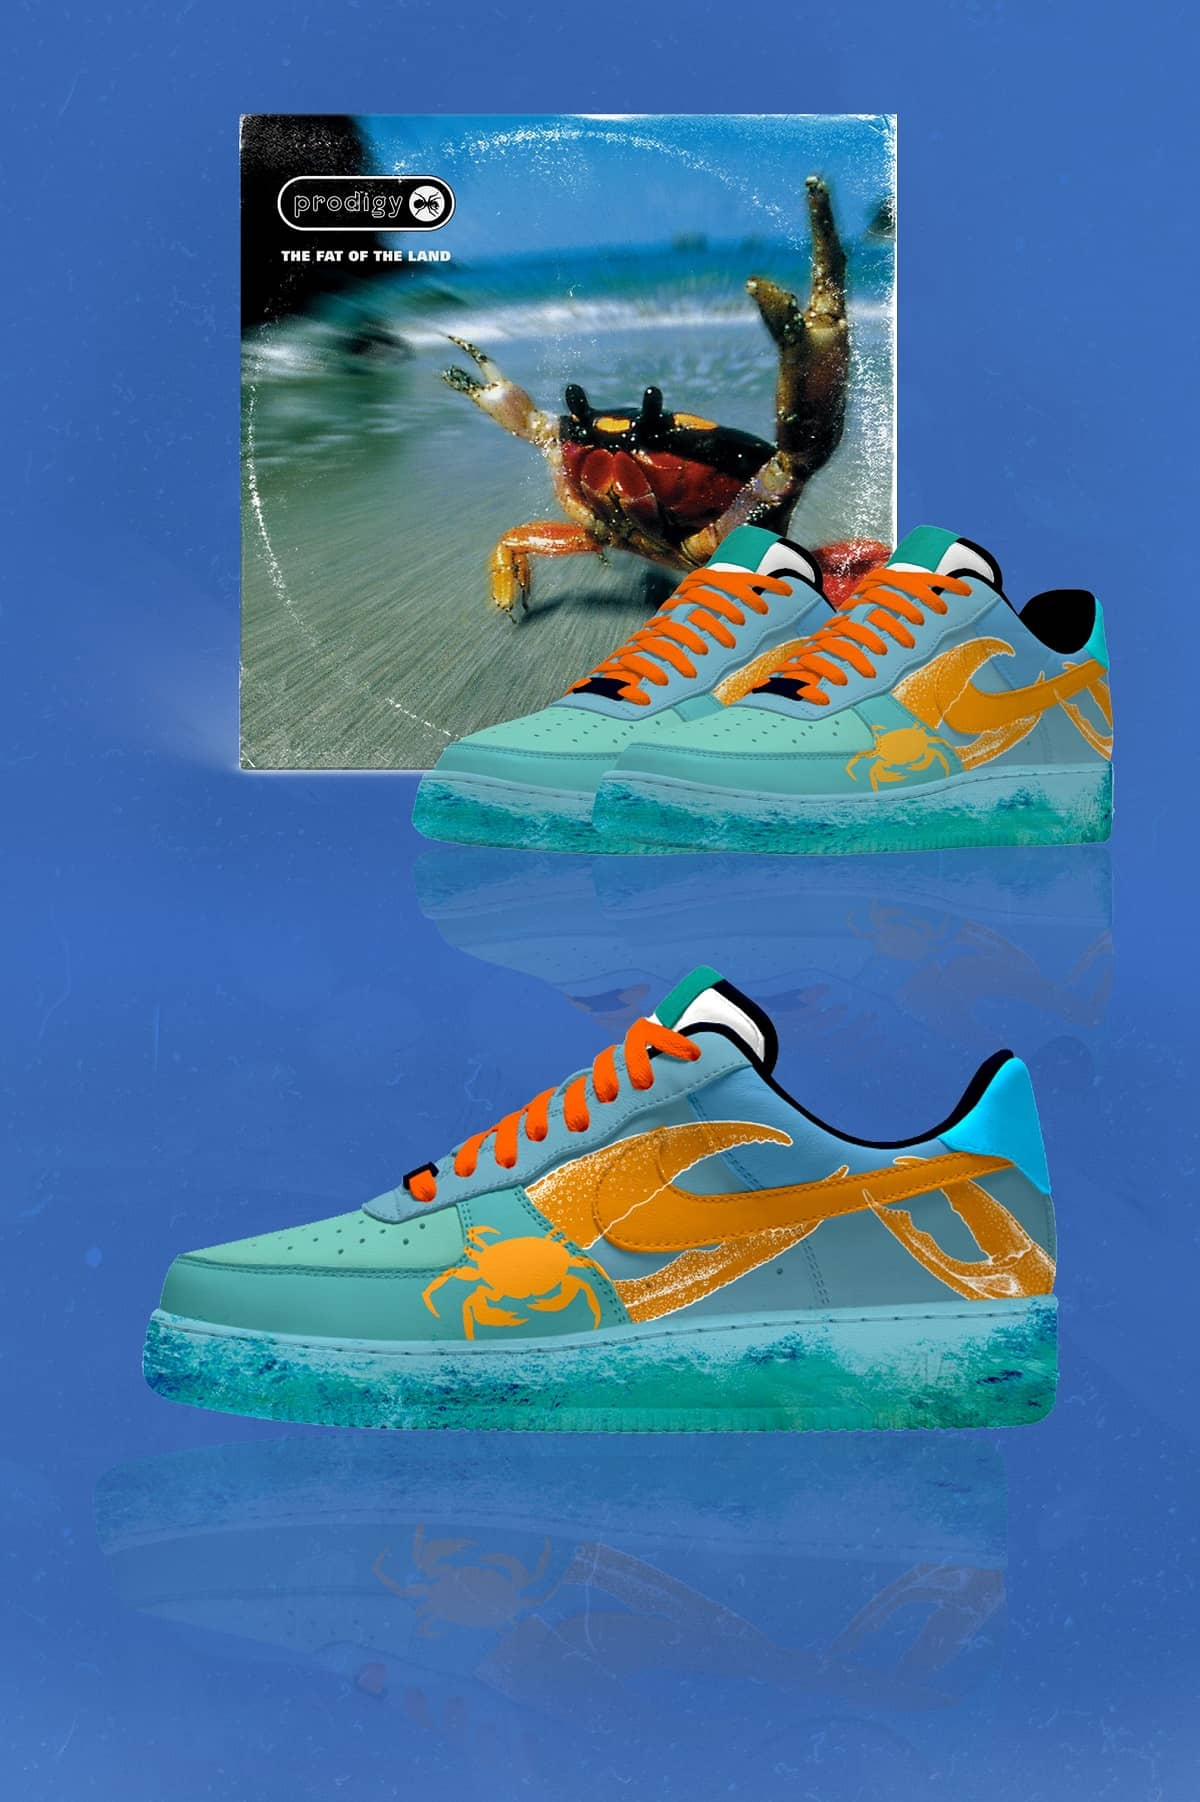 Mixmag_Album-Covers-Nike-Sneakers_Prodigy-The-Fat-Of-The-Land-AIR-CRAB-1